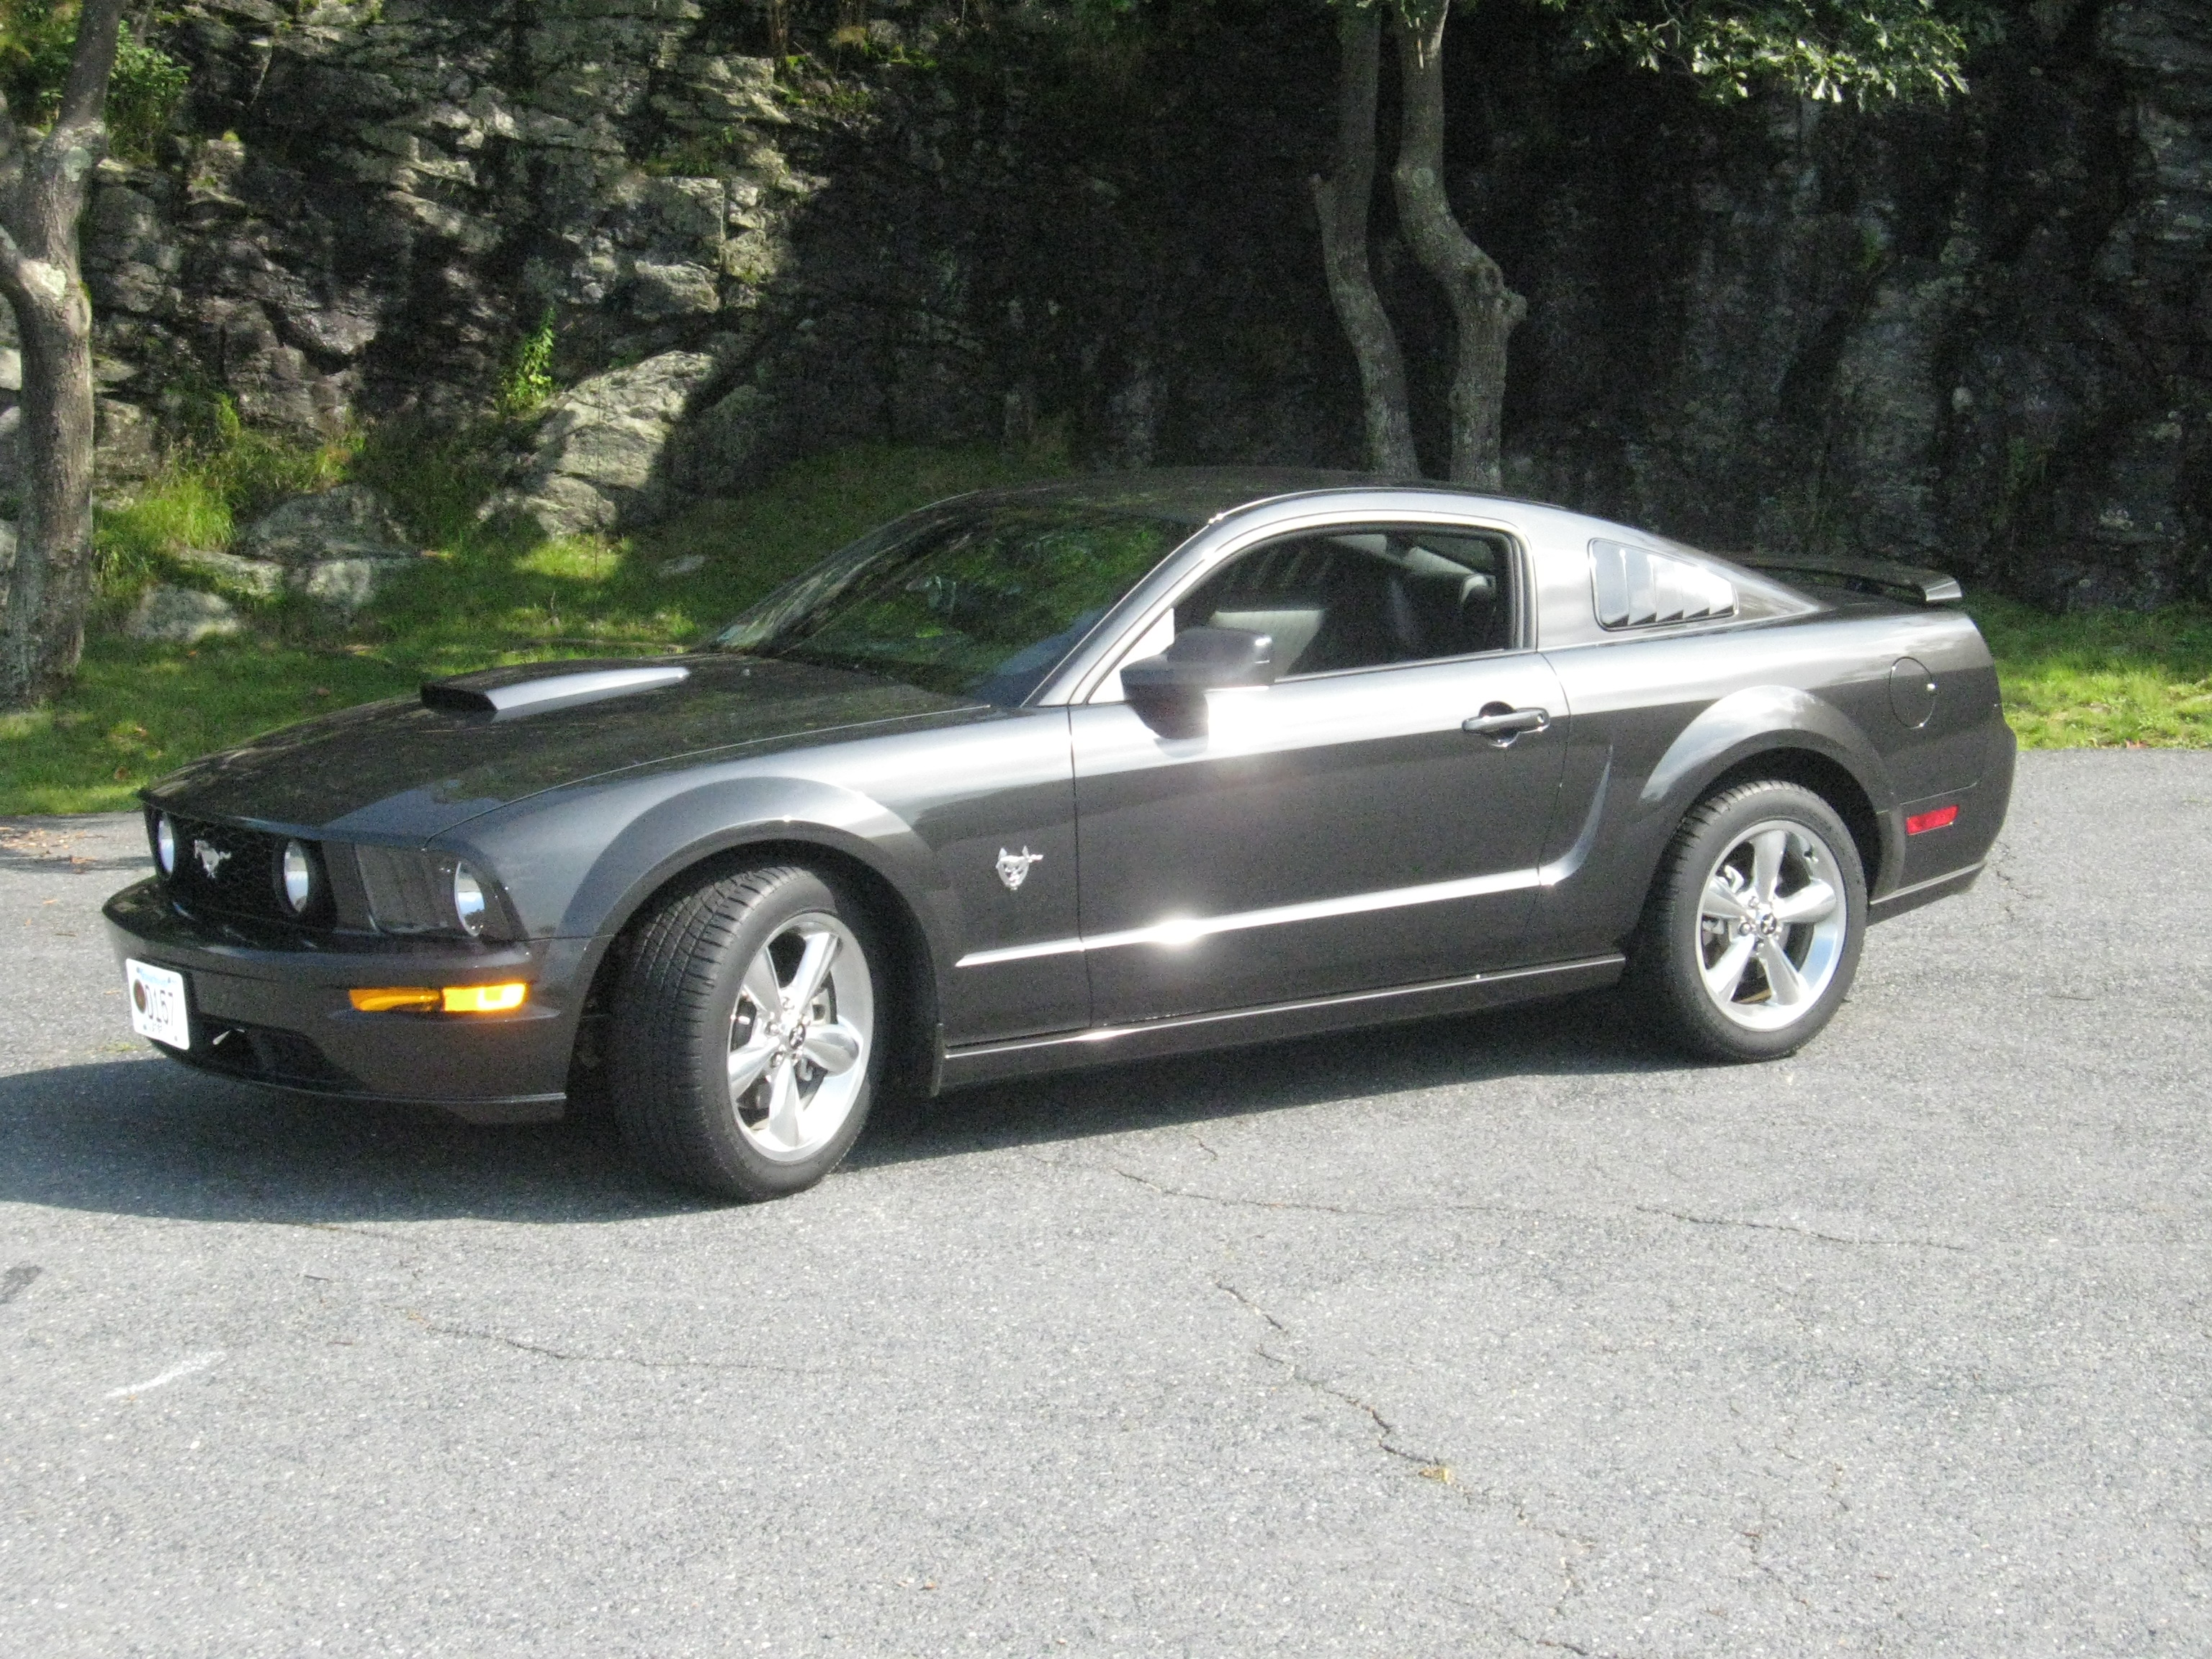 2009 ford mustang image 12